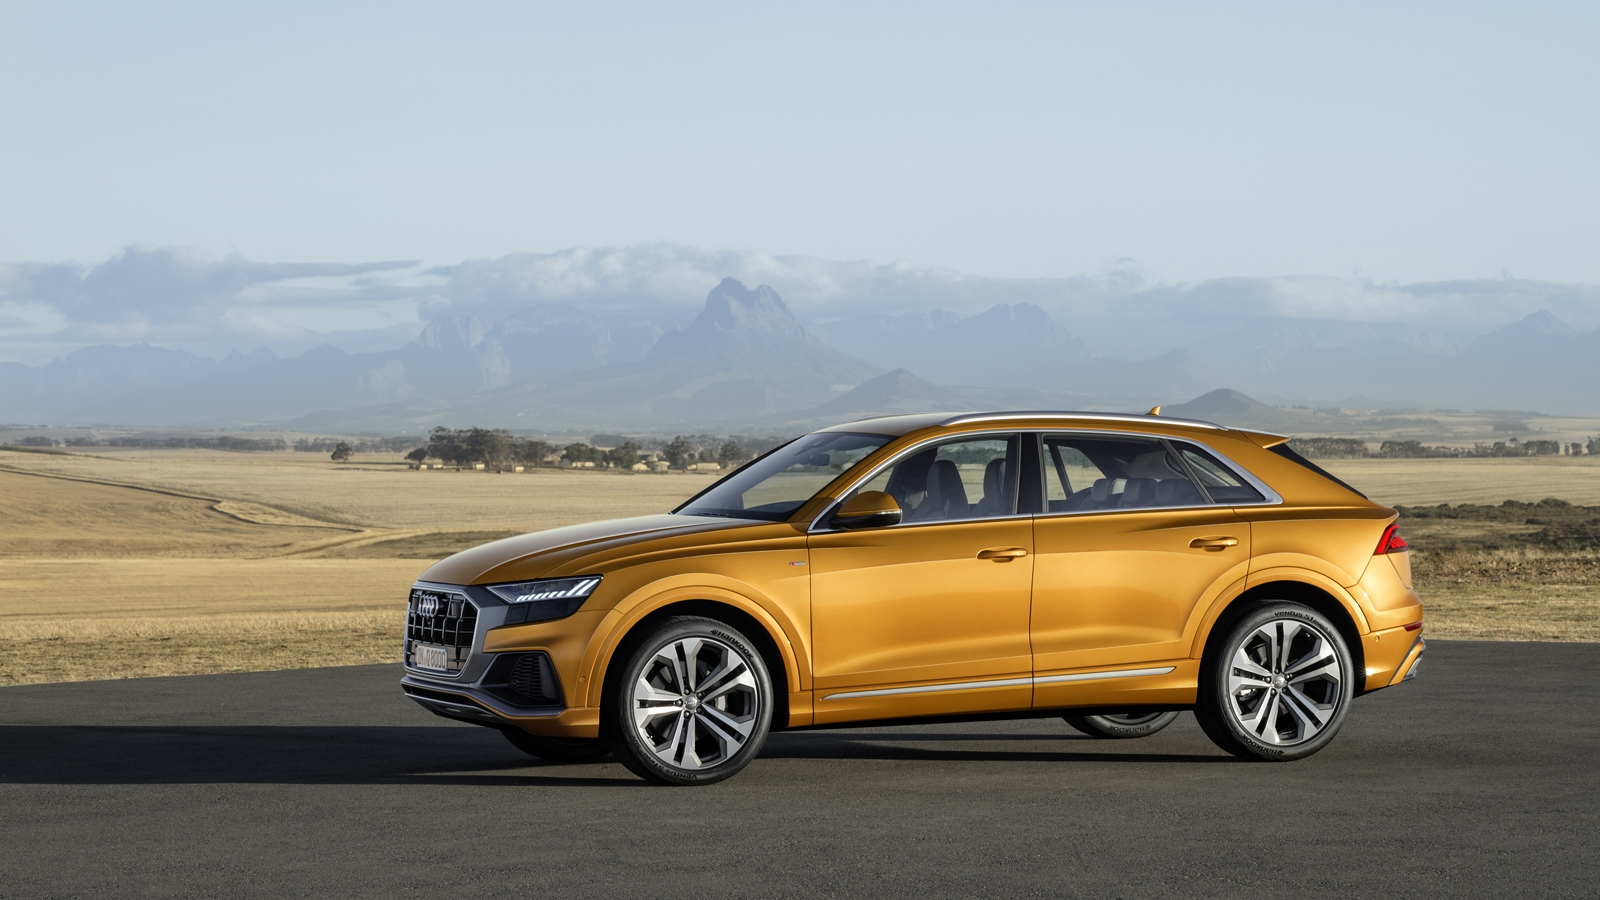 2019 Audi Q8 Debuts With 48V Mild Hybrid V6, All-Wheel